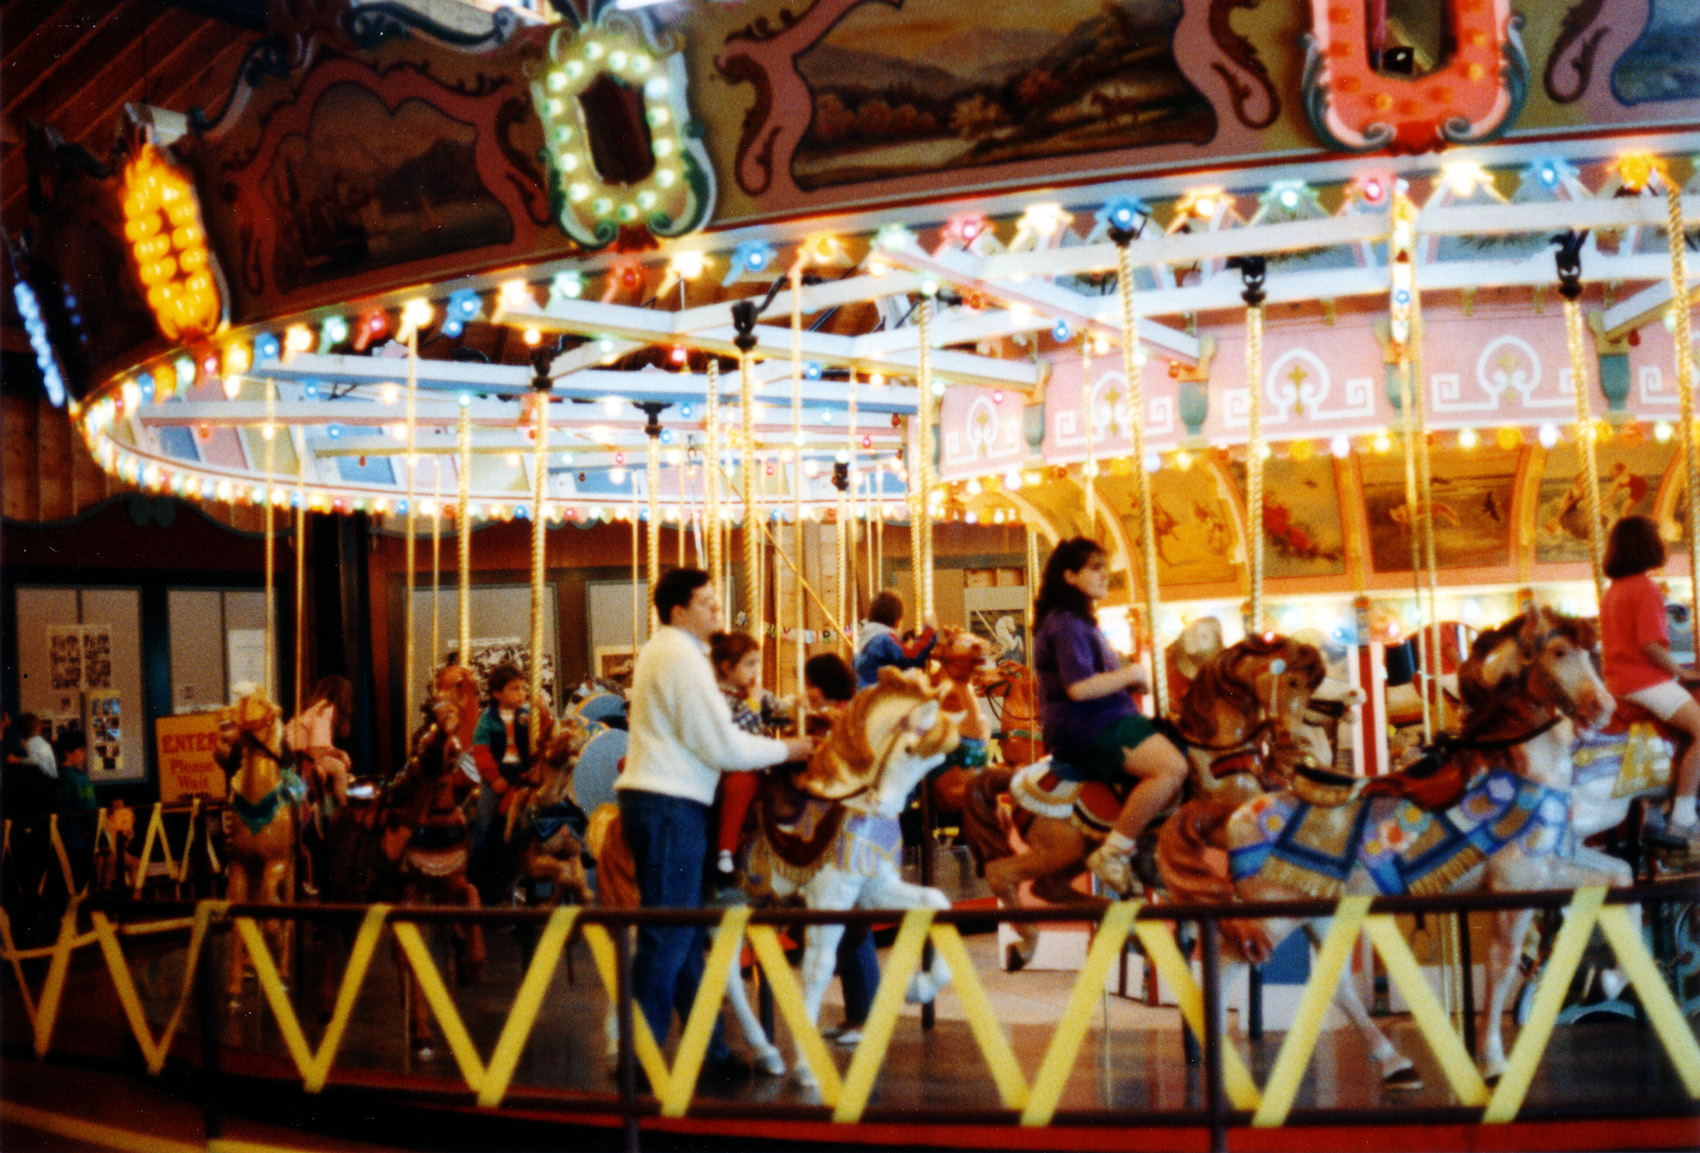 Historic Holyoke merry go round 1994 Mark Mulcahy announces The Gus LP, shares Origins of Taking Baby Steps: Stream